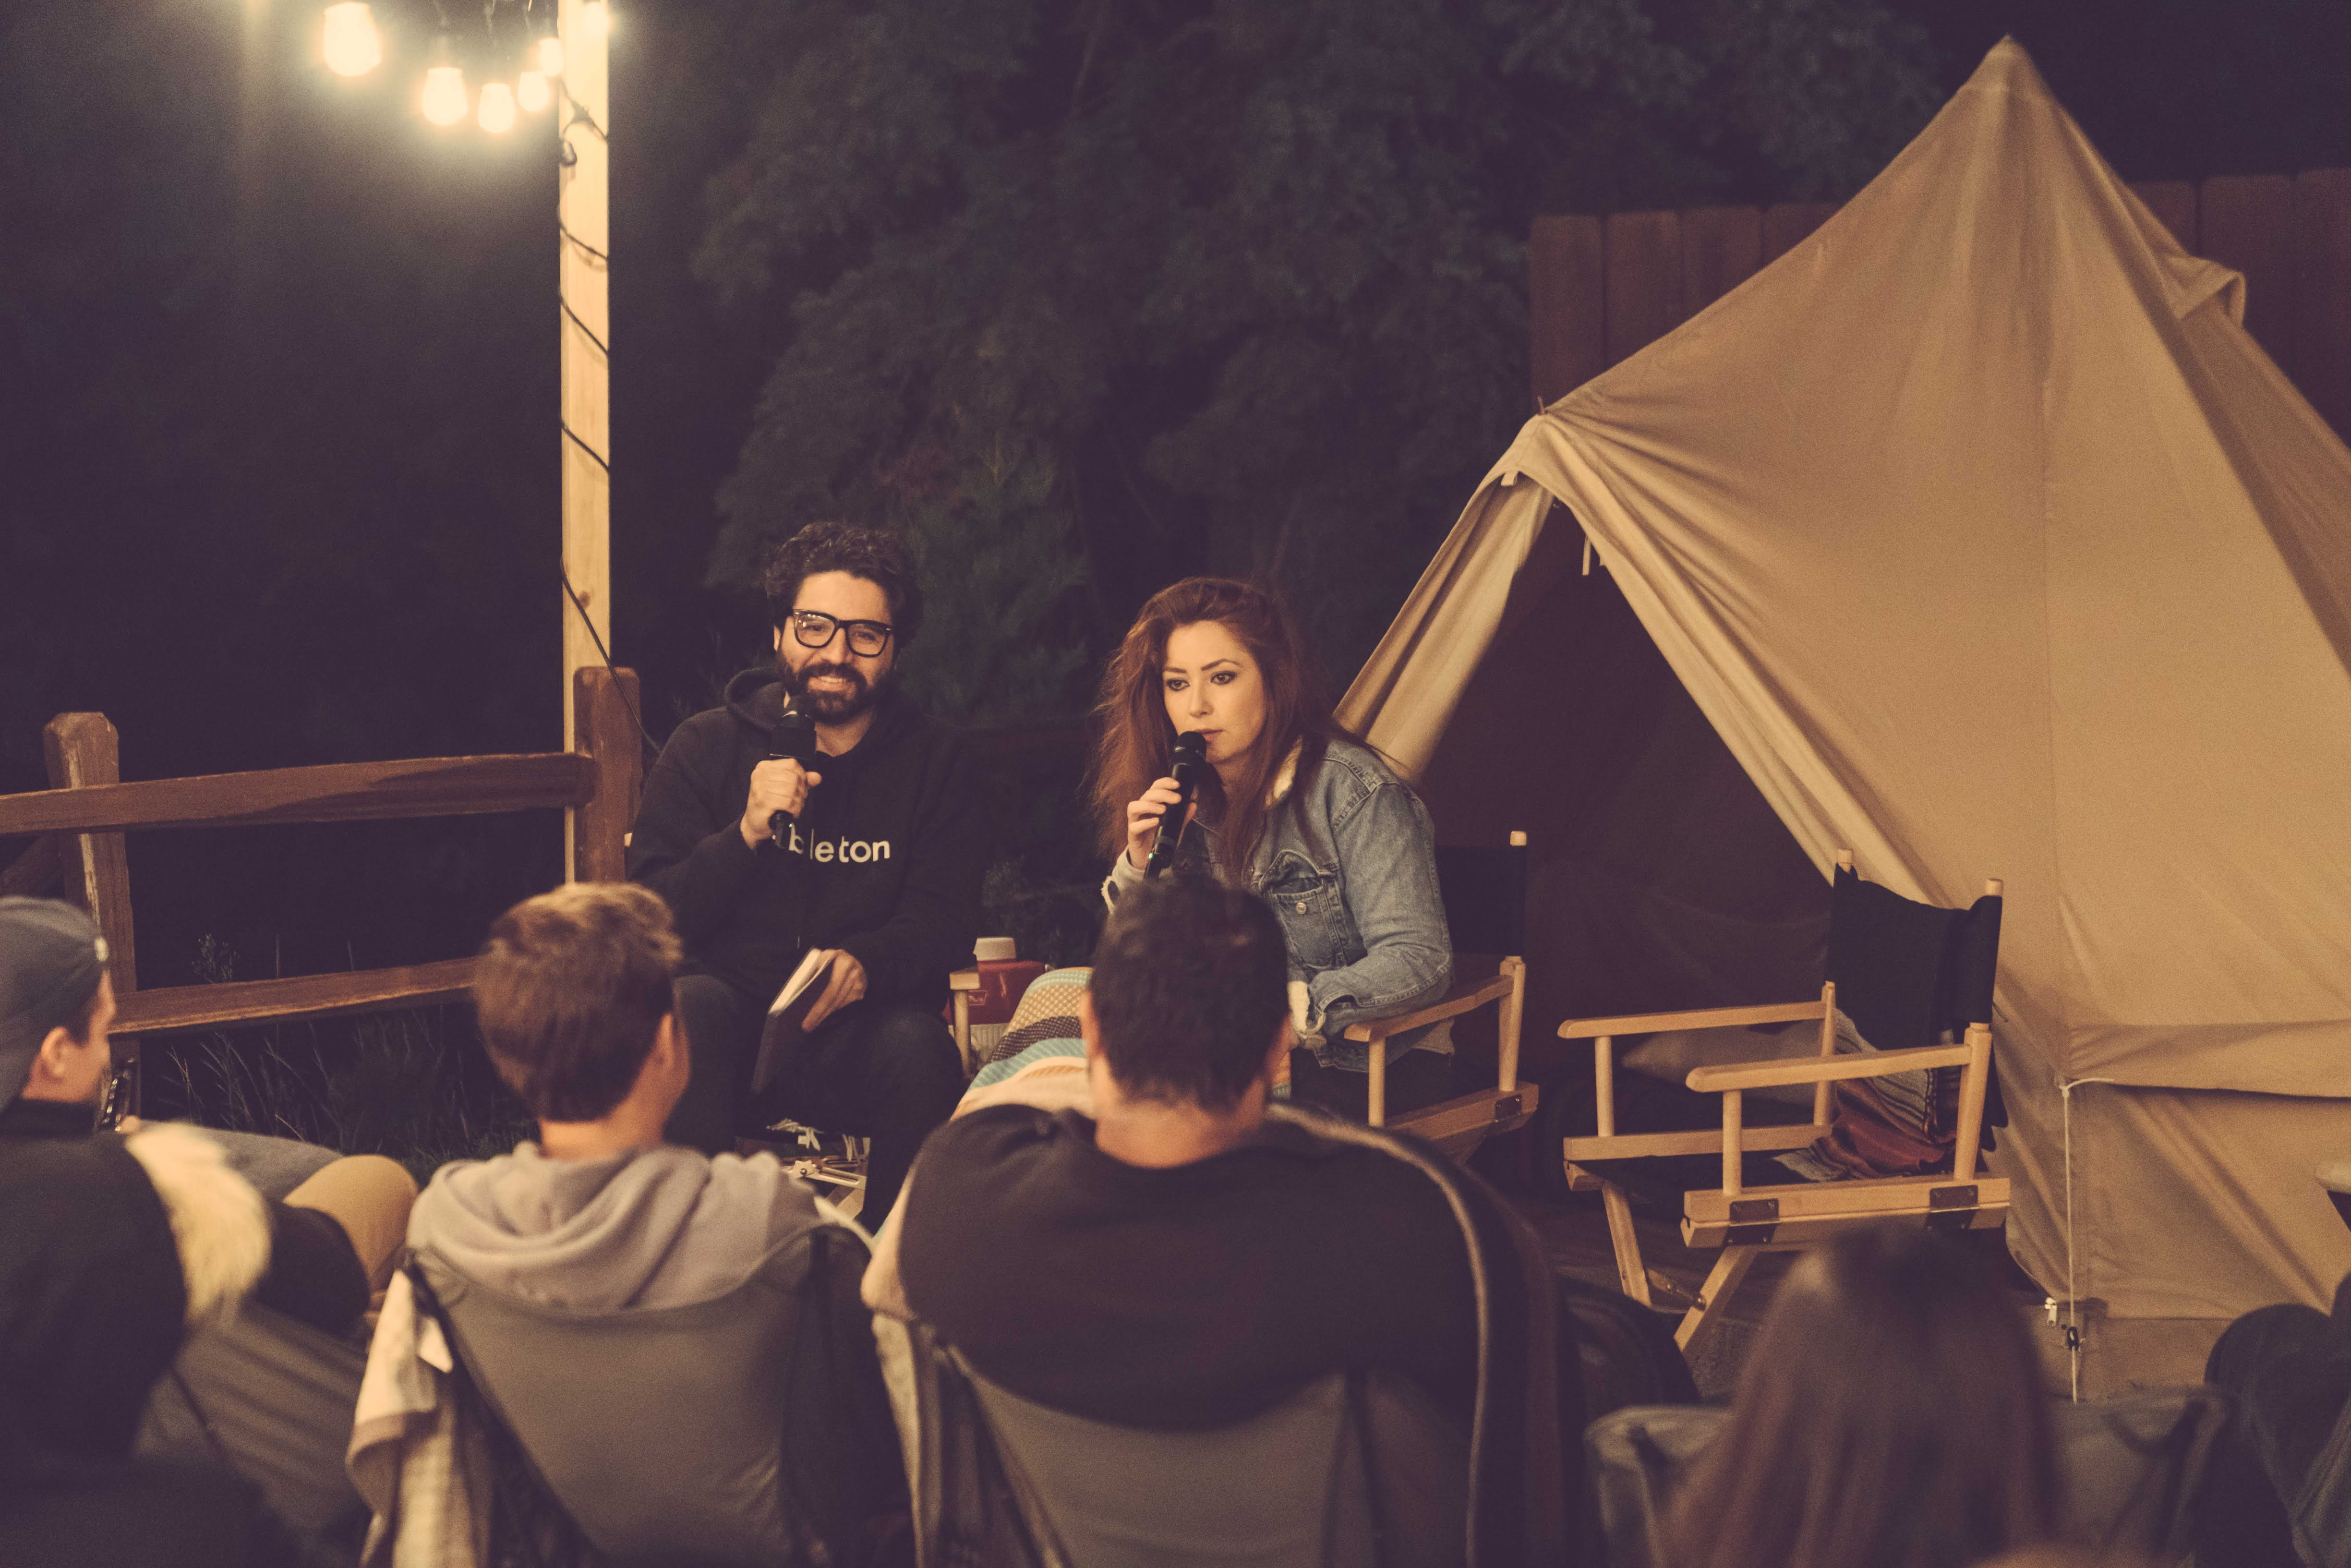 Being interviewed by Pablo at Epicurrence